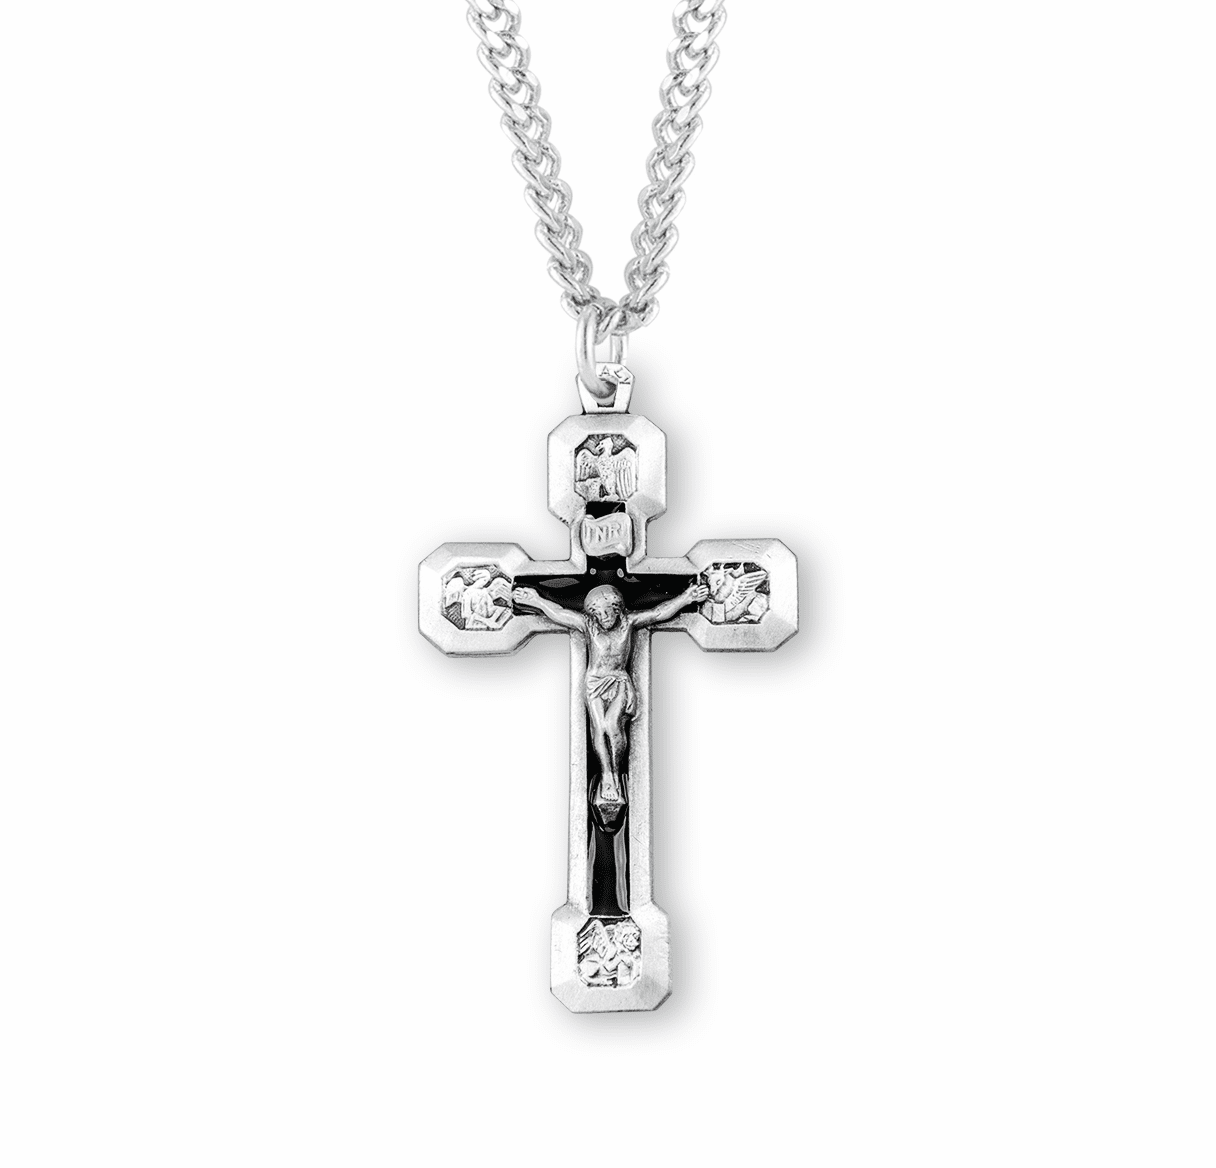 HMH Religious Four Evangelists Sterling Silver Crucifix Necklace